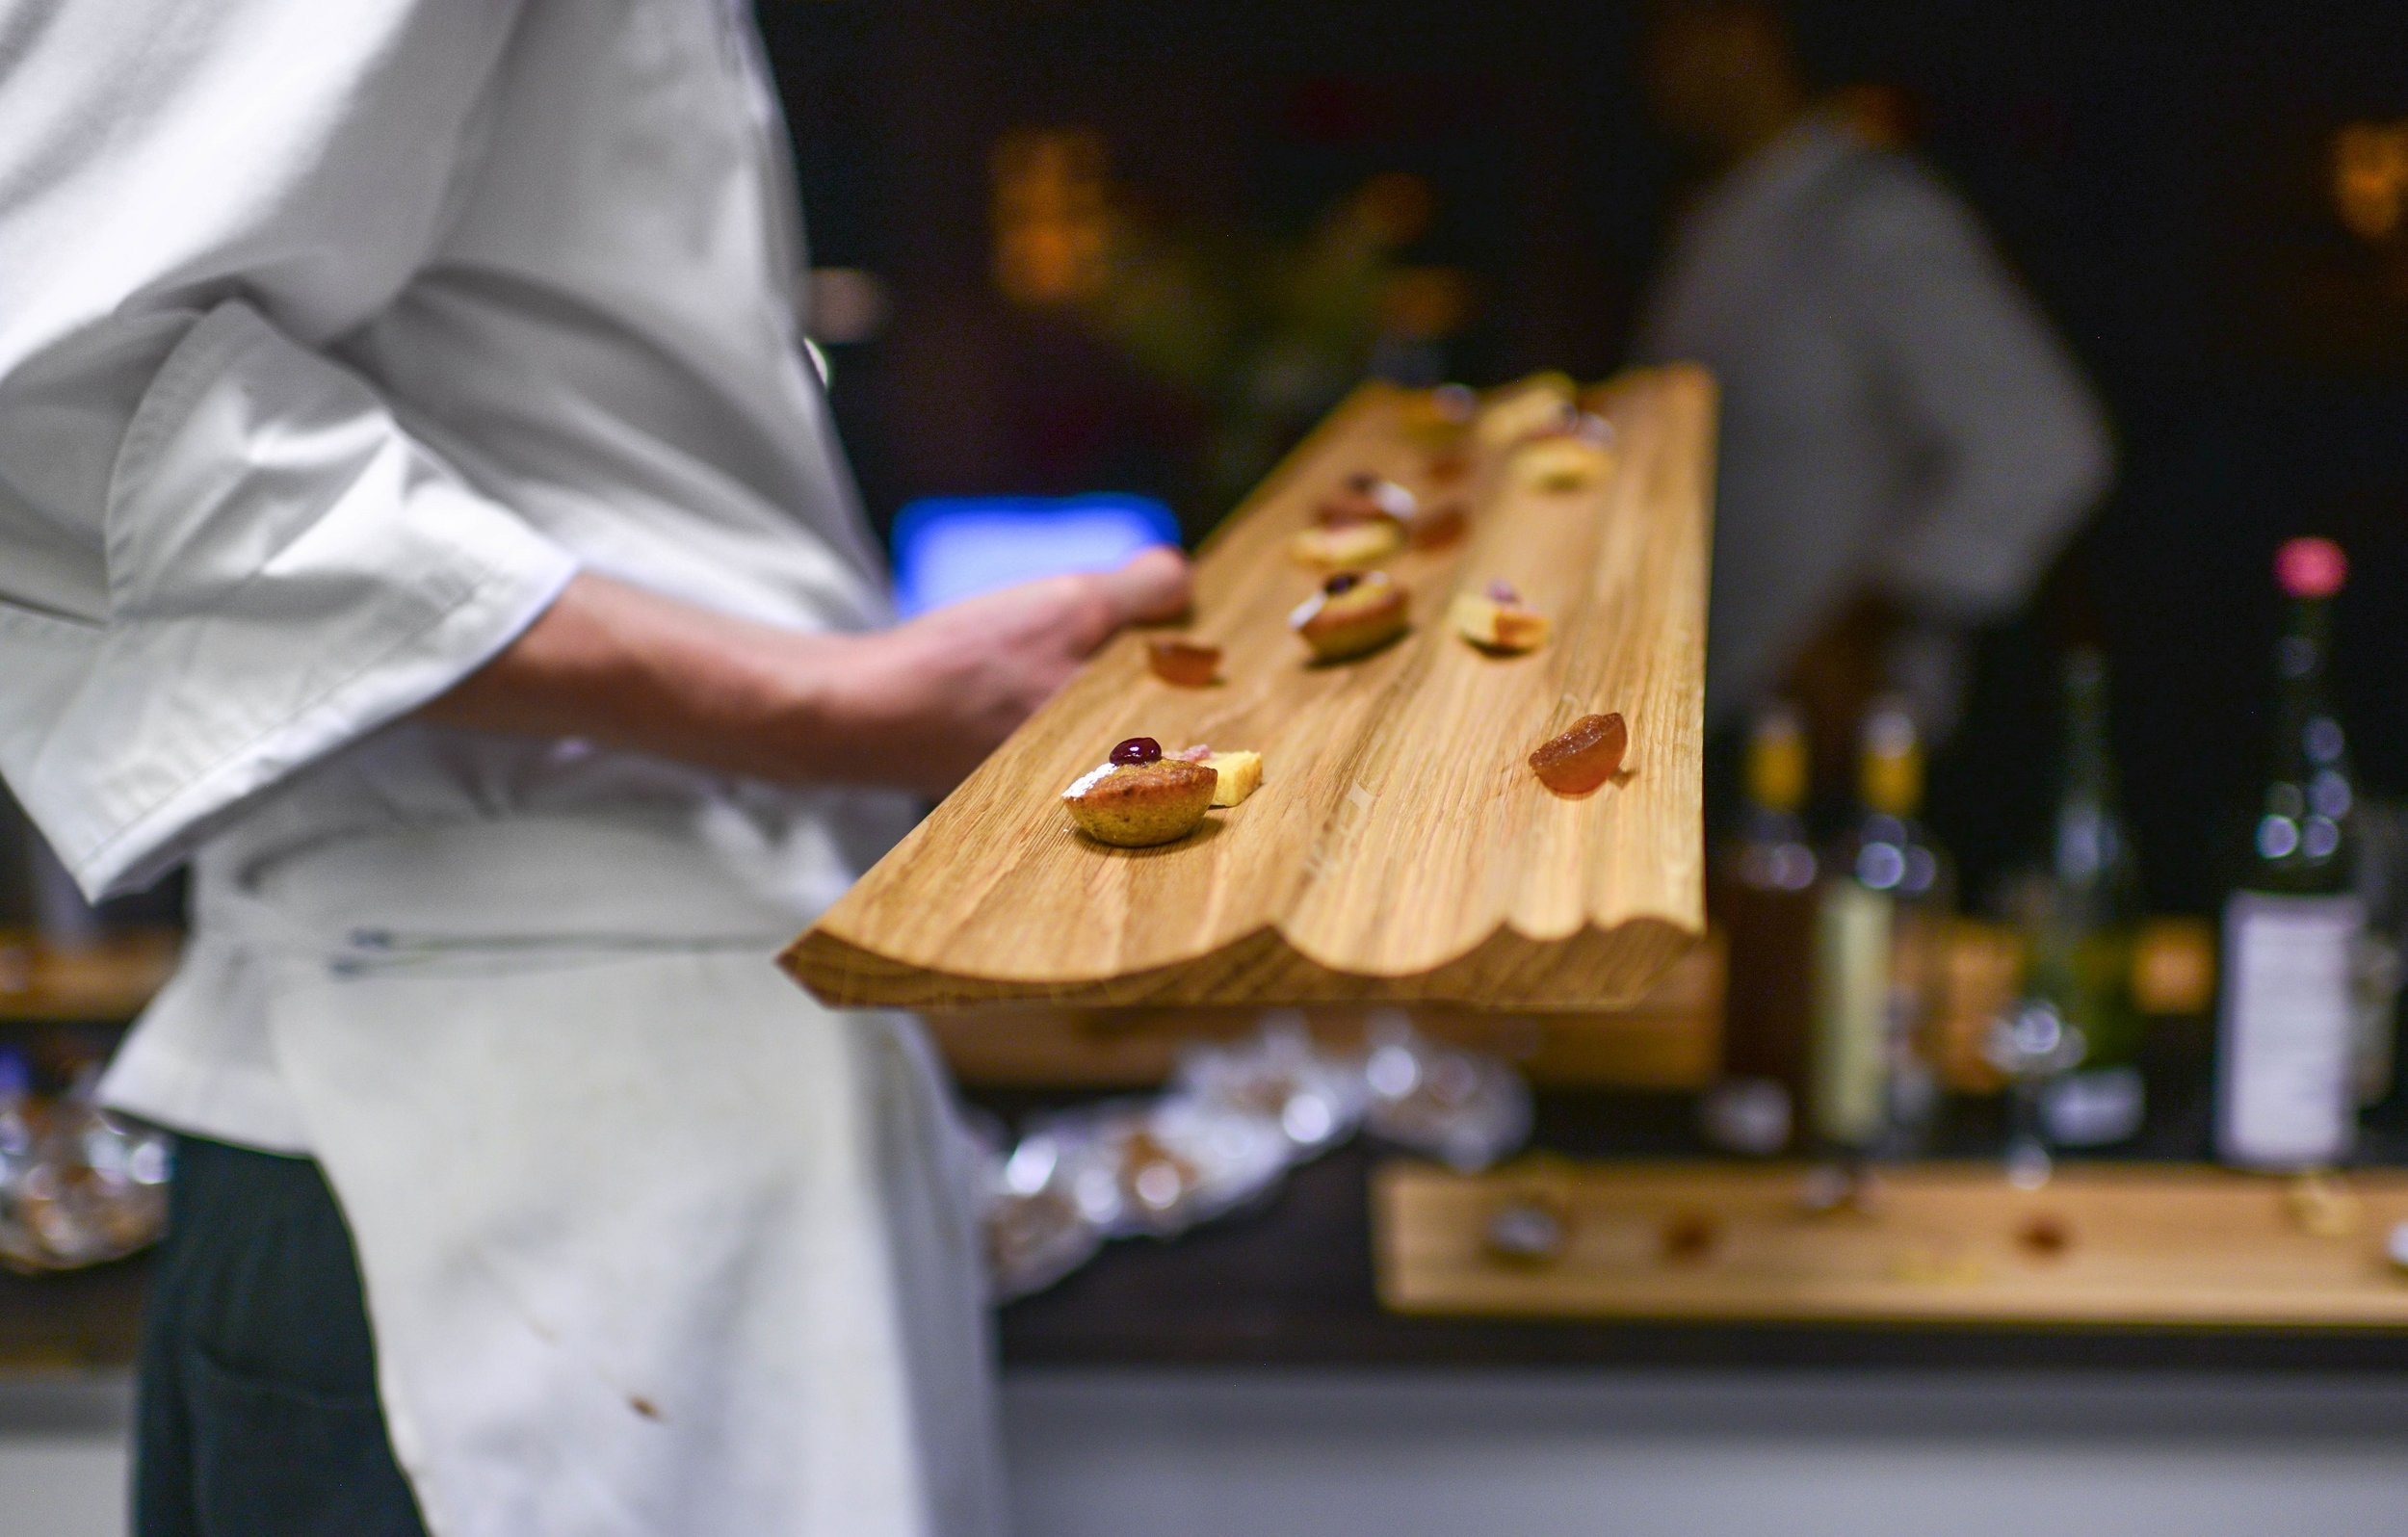 "The serving boards were a meter long, for four to six guests to share between them. When asked during the dinner, they said that ""it was ok to eat from the same board, since they had been introduced to each other"" beforehand"". Photo Bonjwing Lee."